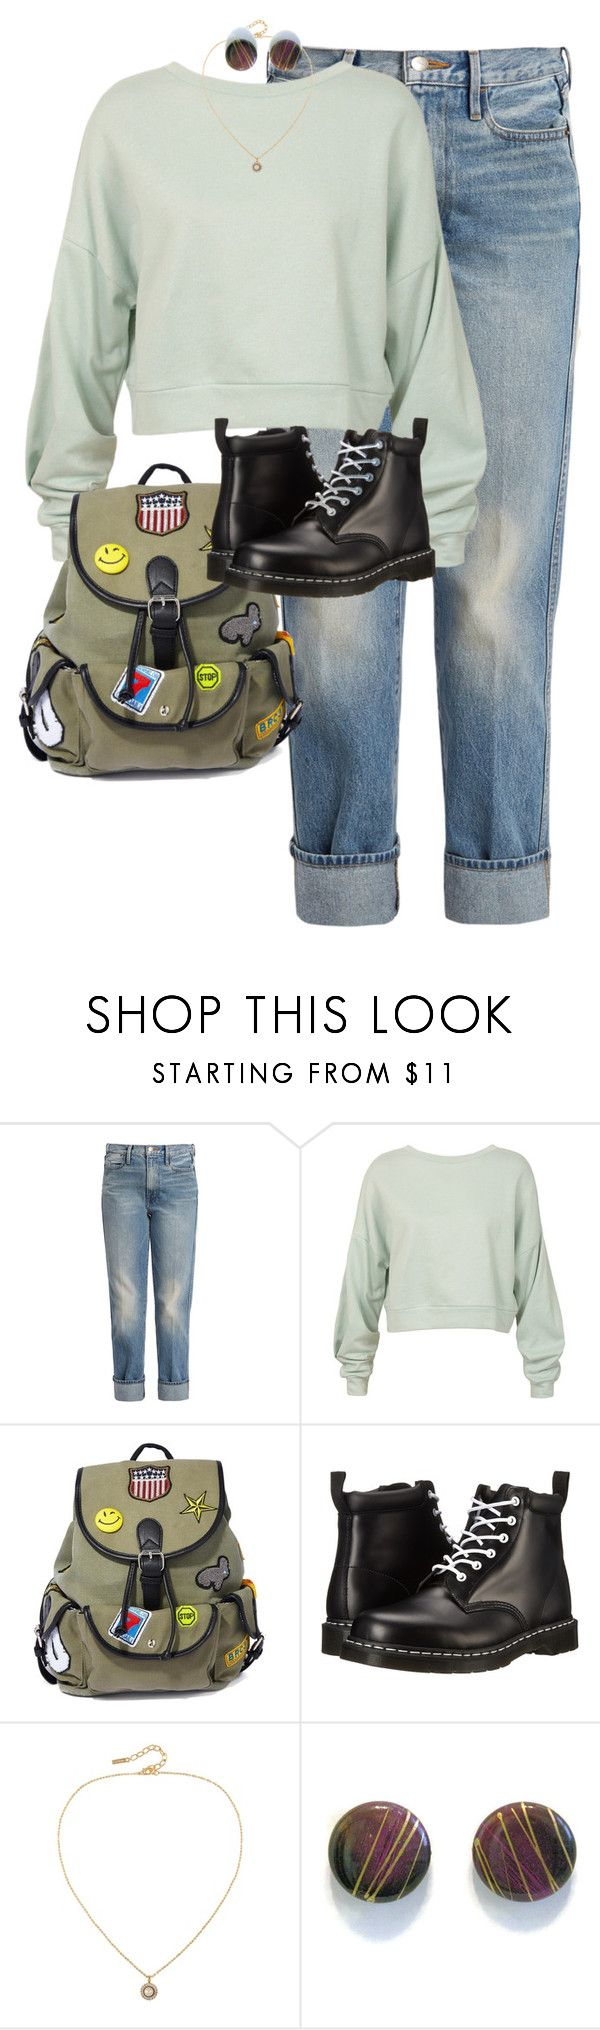 """Wendy"" by shaebutter ❤ liked on Polyvore featuring Frame, Sans Souci, Like Dreams, Dr. Martens and Susan Caplan Vintage"